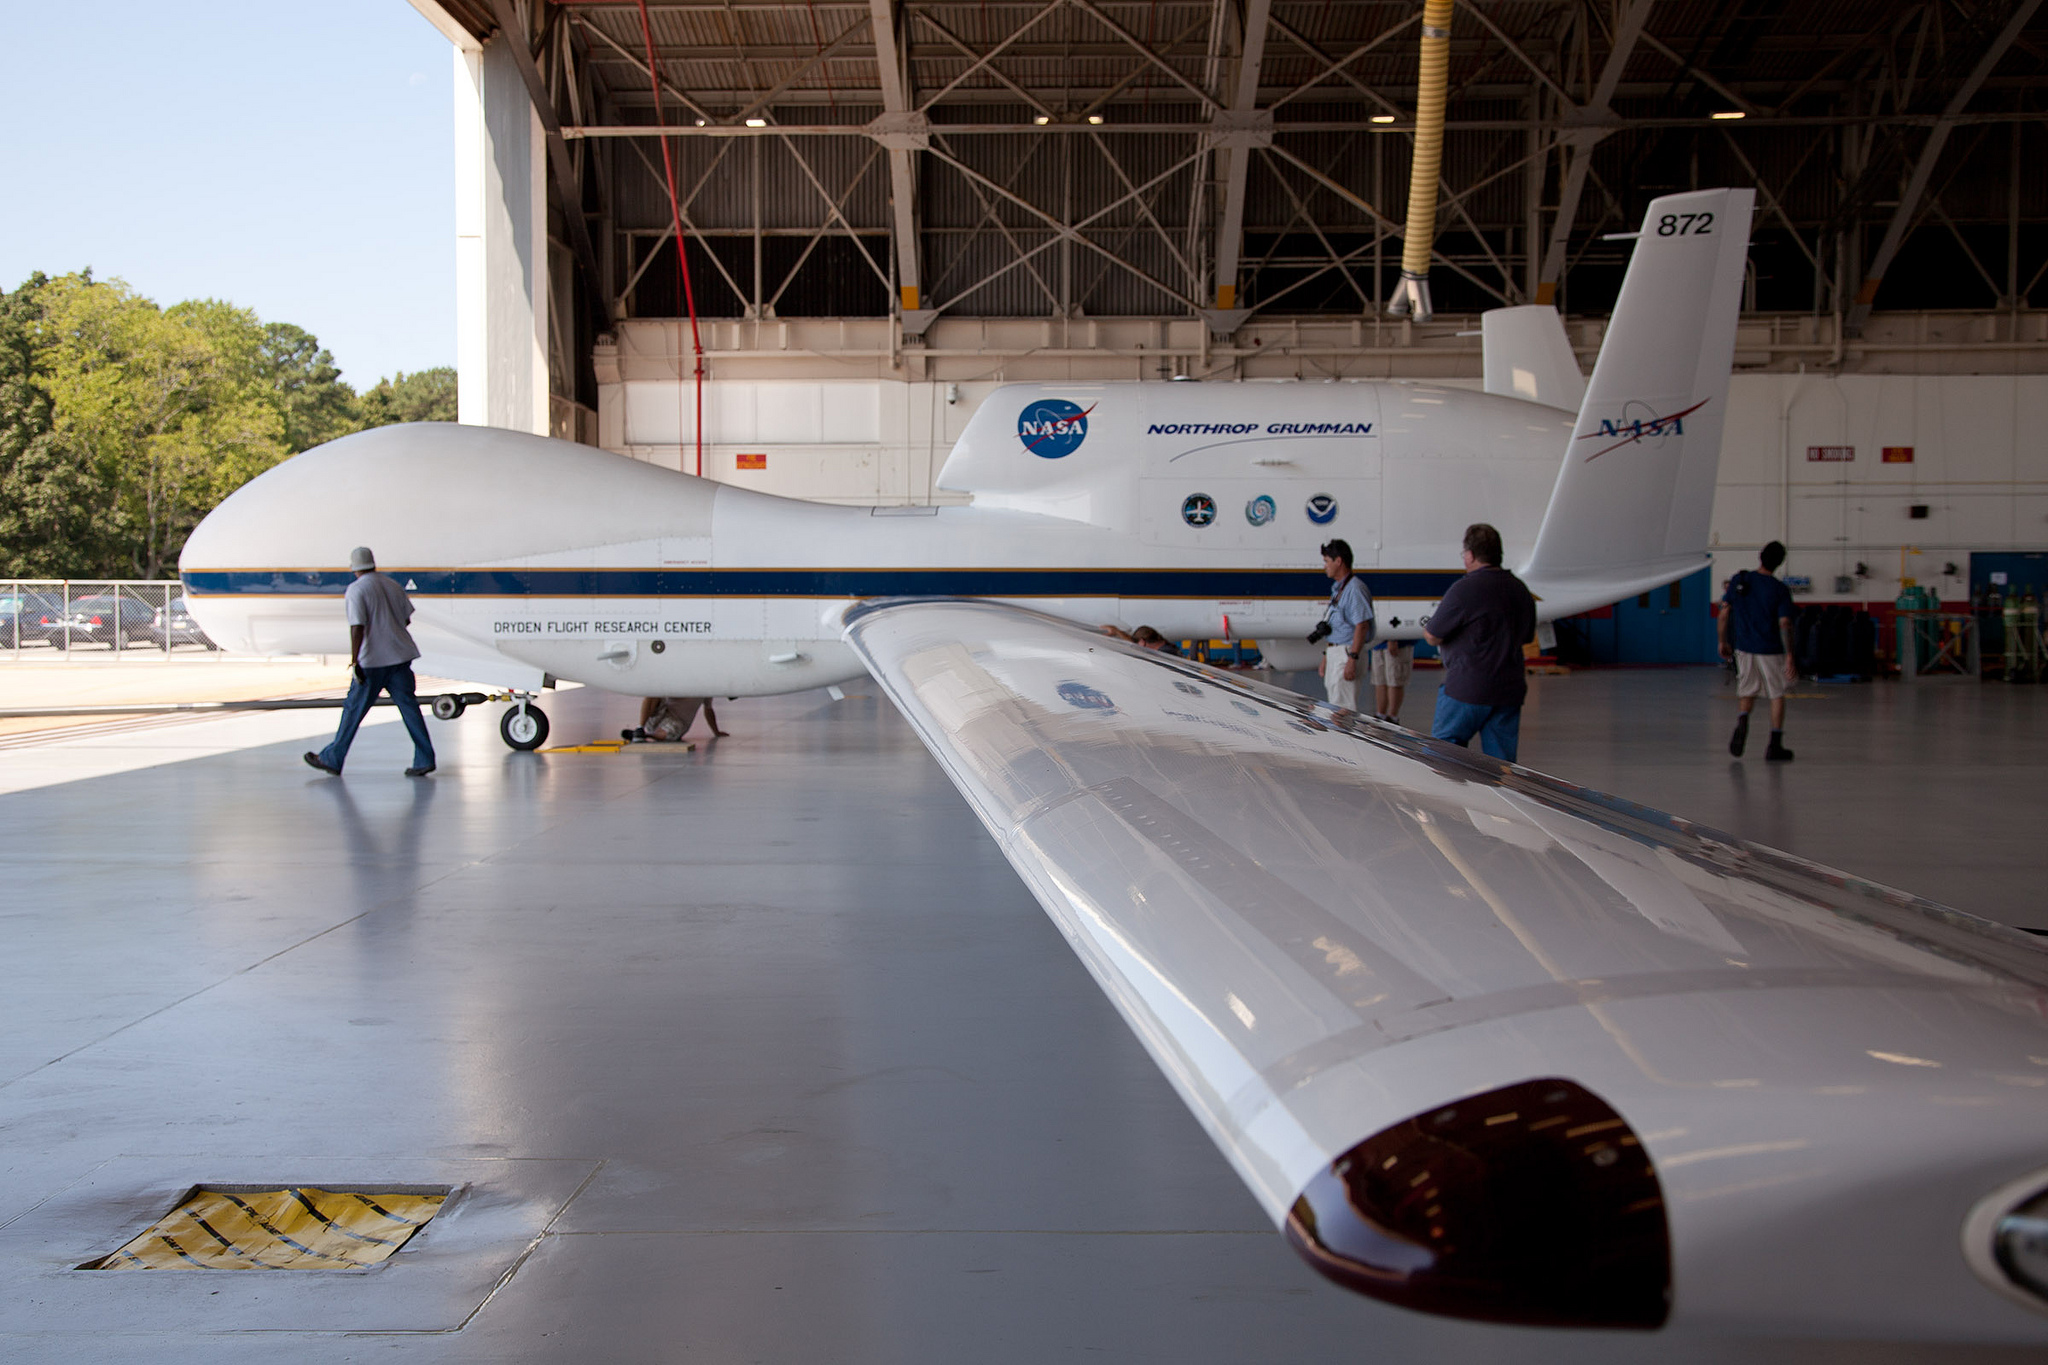 a nasa aircraft in hangar - photo #15